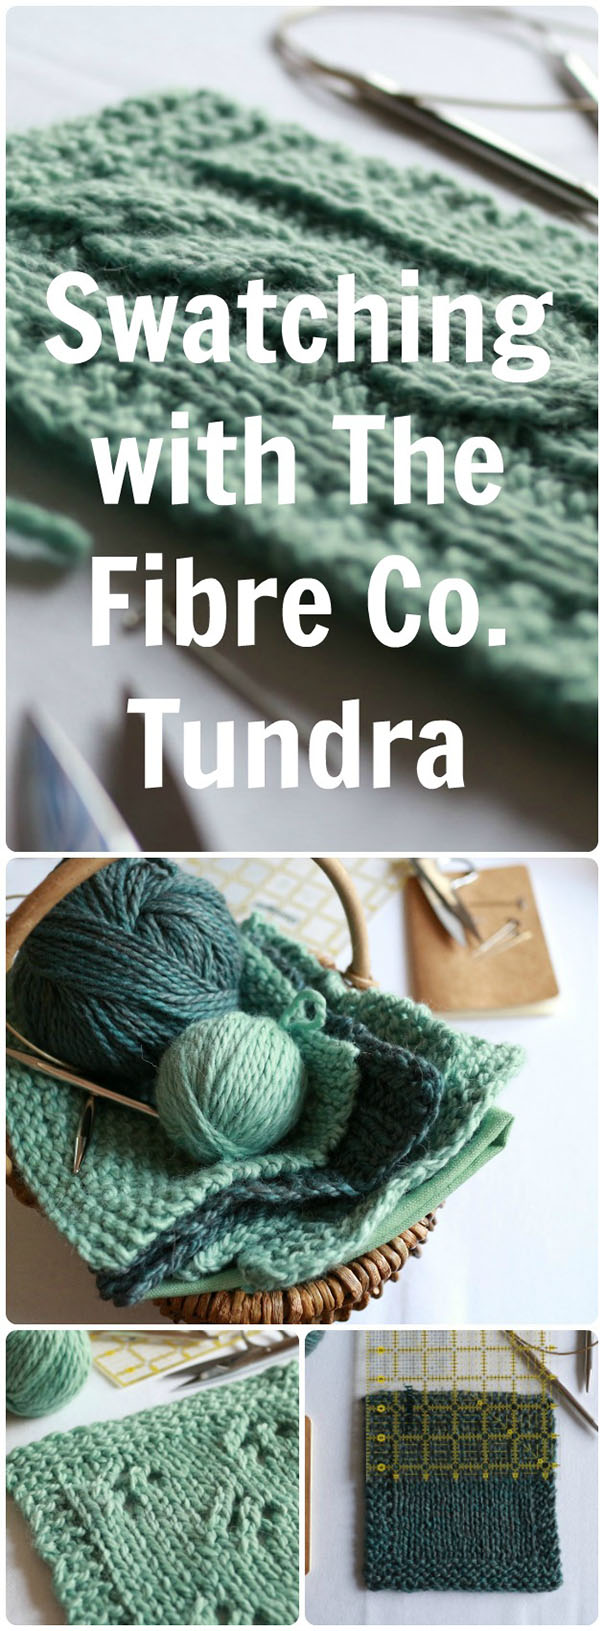 The Fibre Co. Tundra